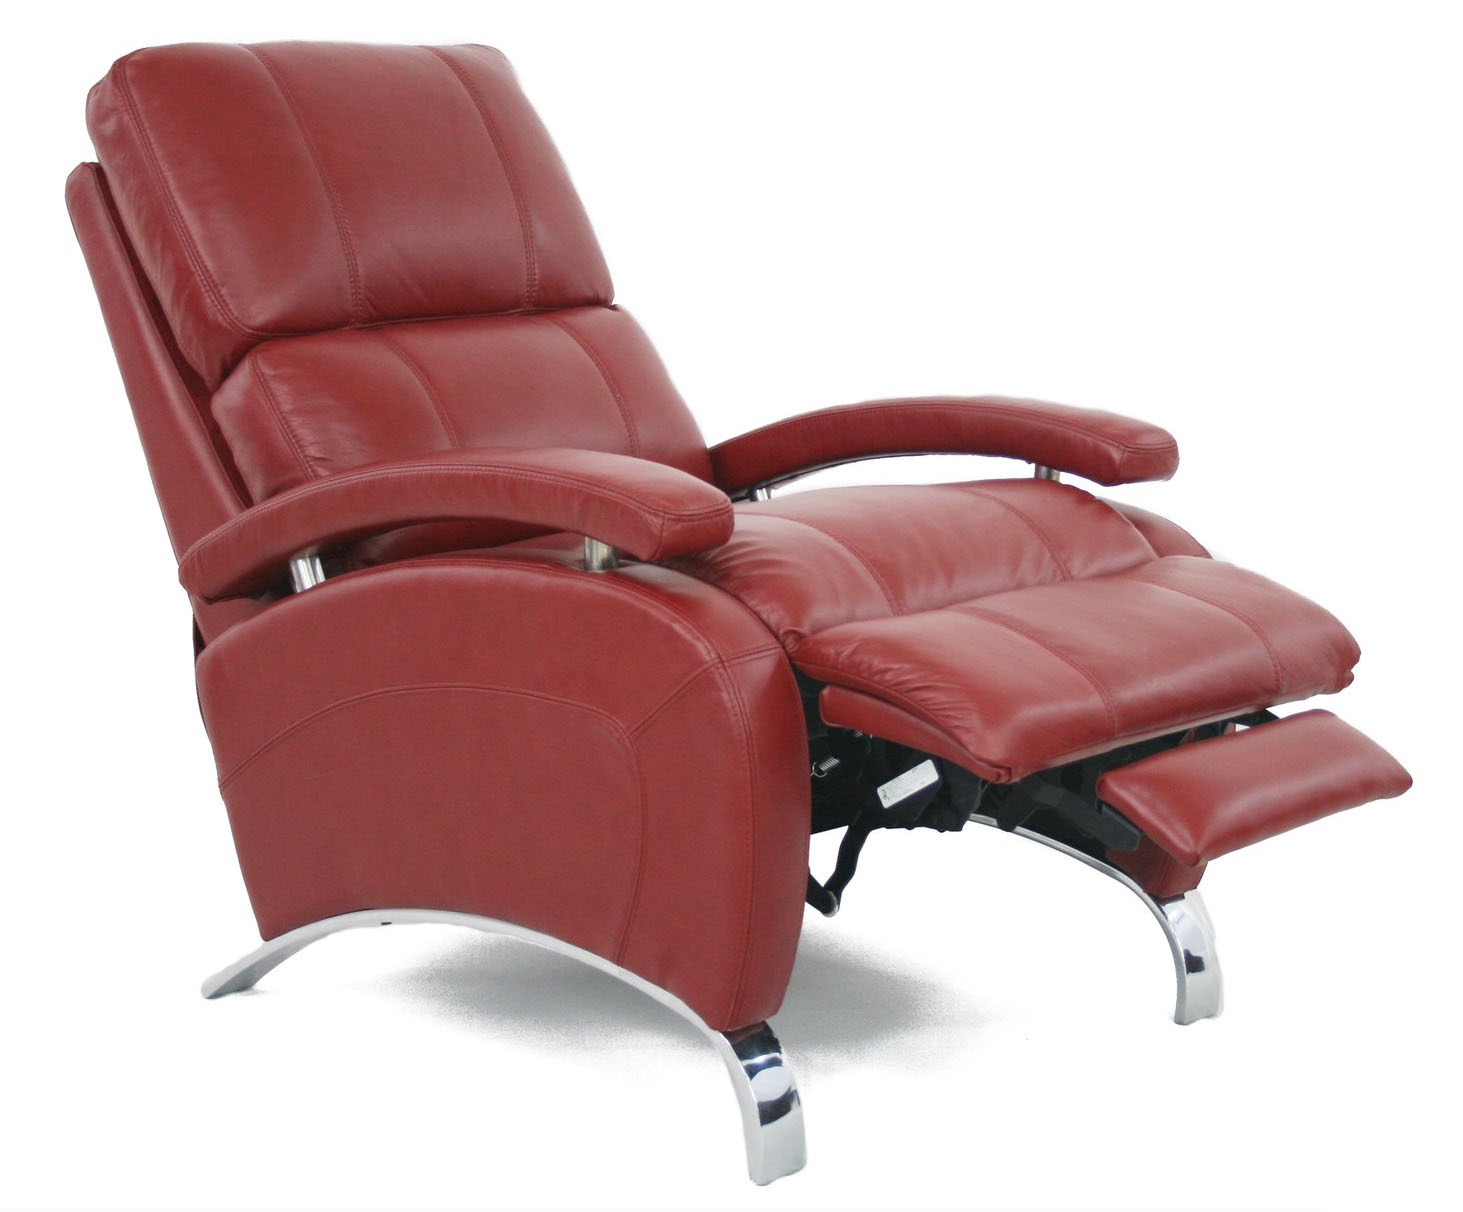 Barcalounger Oracle II Recliner Chair Leather